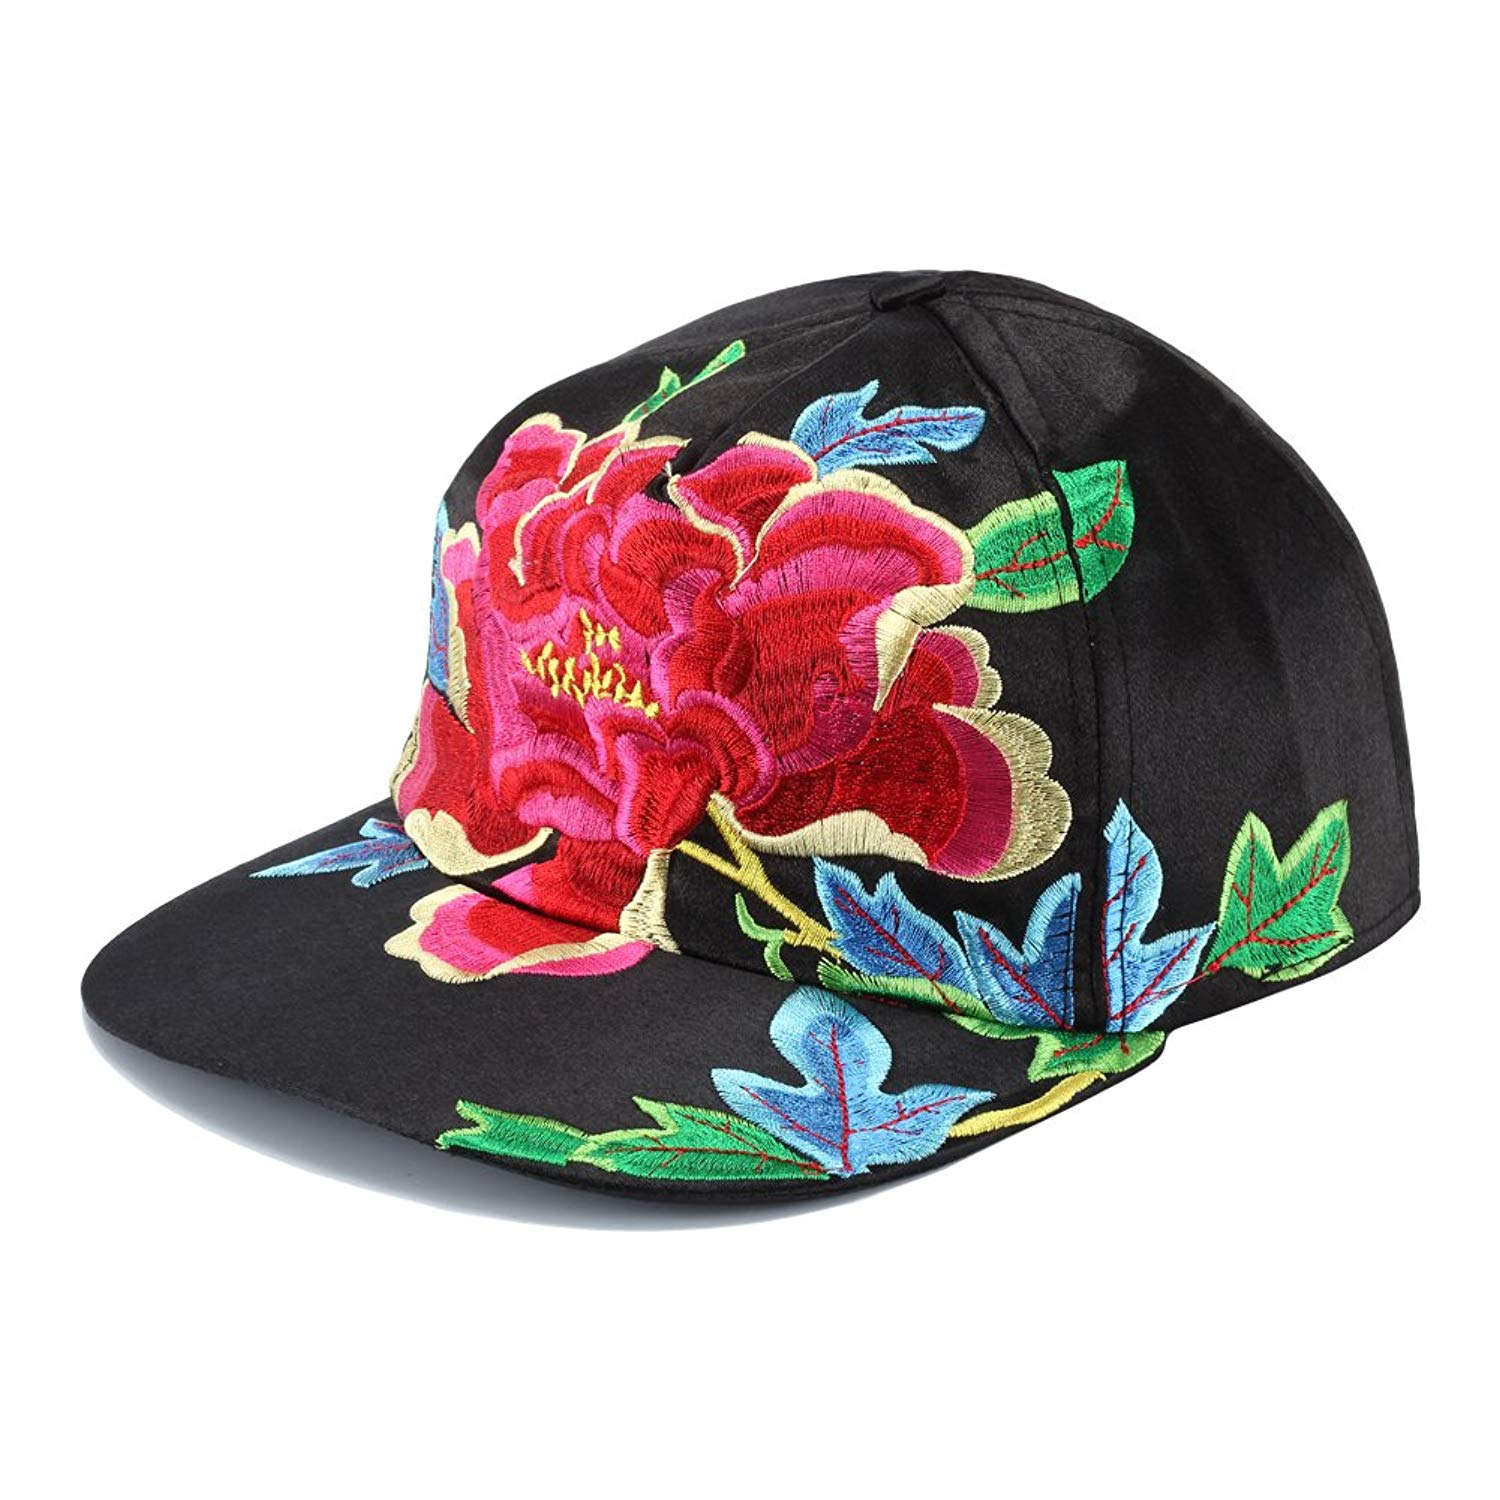 dc4a7a53117c4 Vintage Embroidered Snapback Hats for Men Embroidery Hats Flex Fit Hip Hop  Flat Bill Baseball Cap